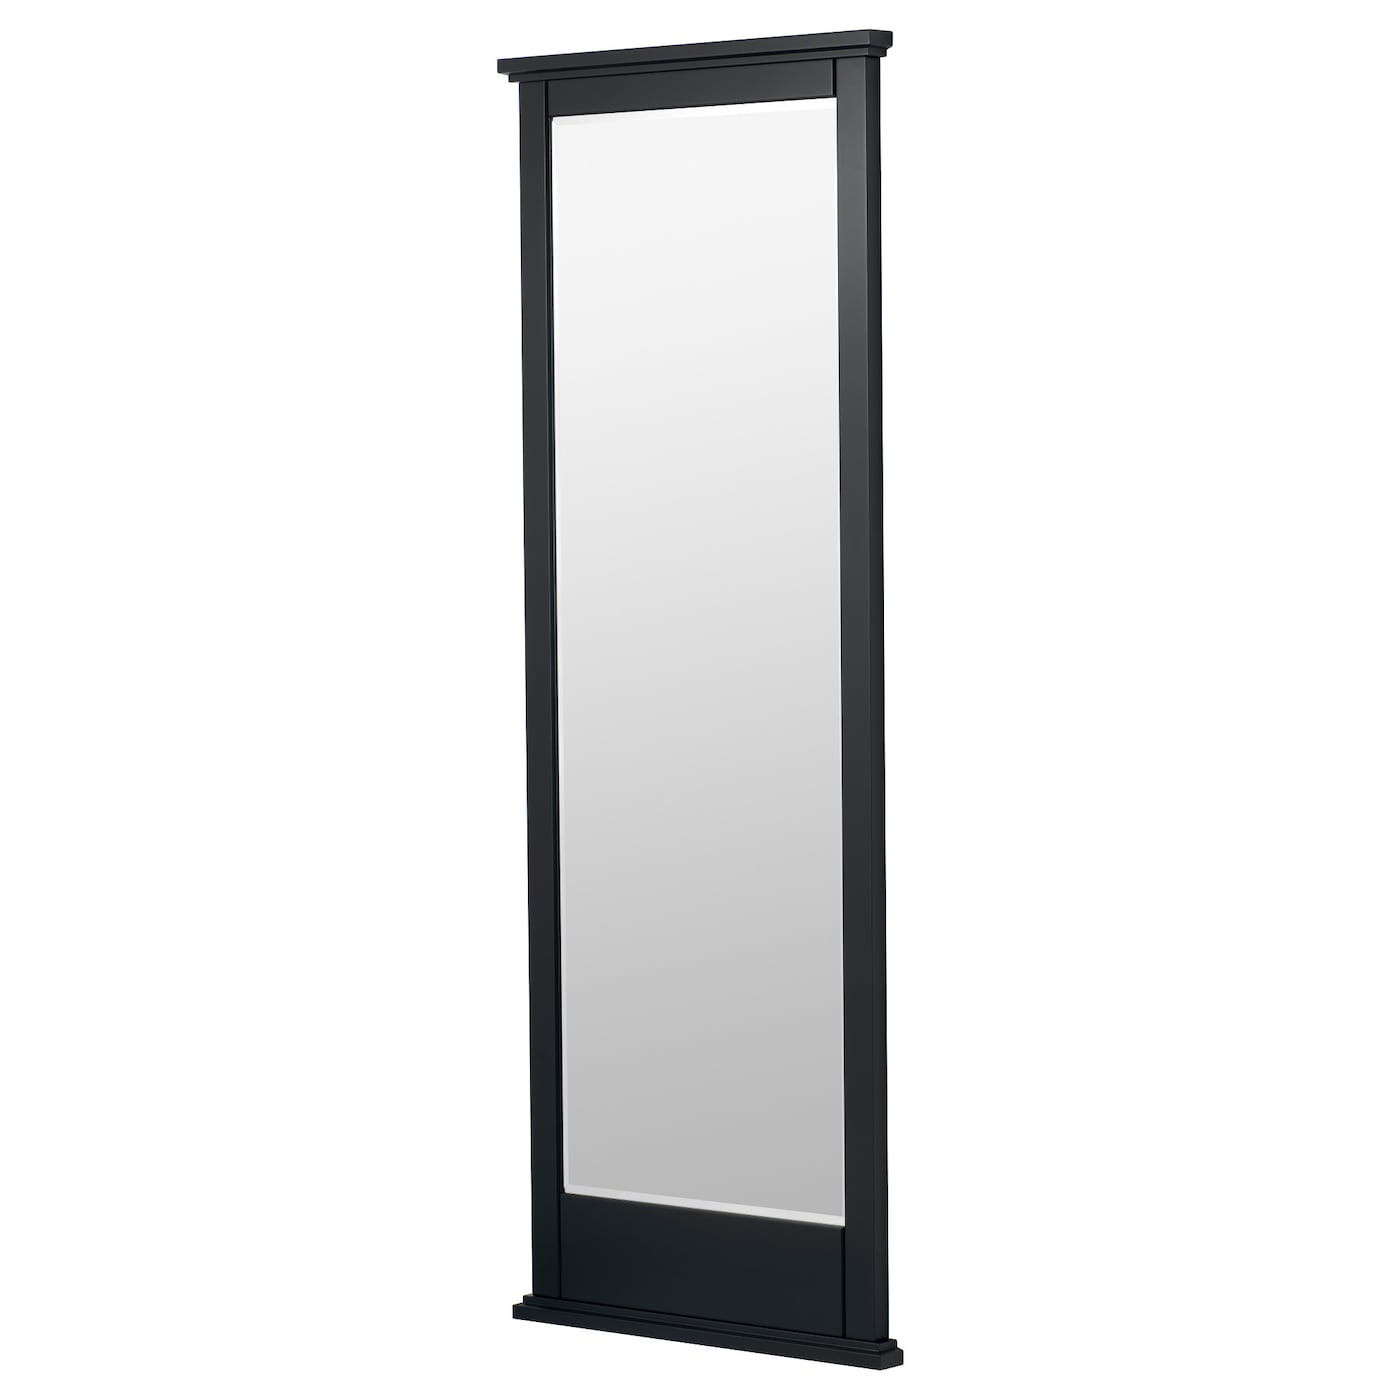 mirrors ikea ireland dublin. Black Bedroom Furniture Sets. Home Design Ideas